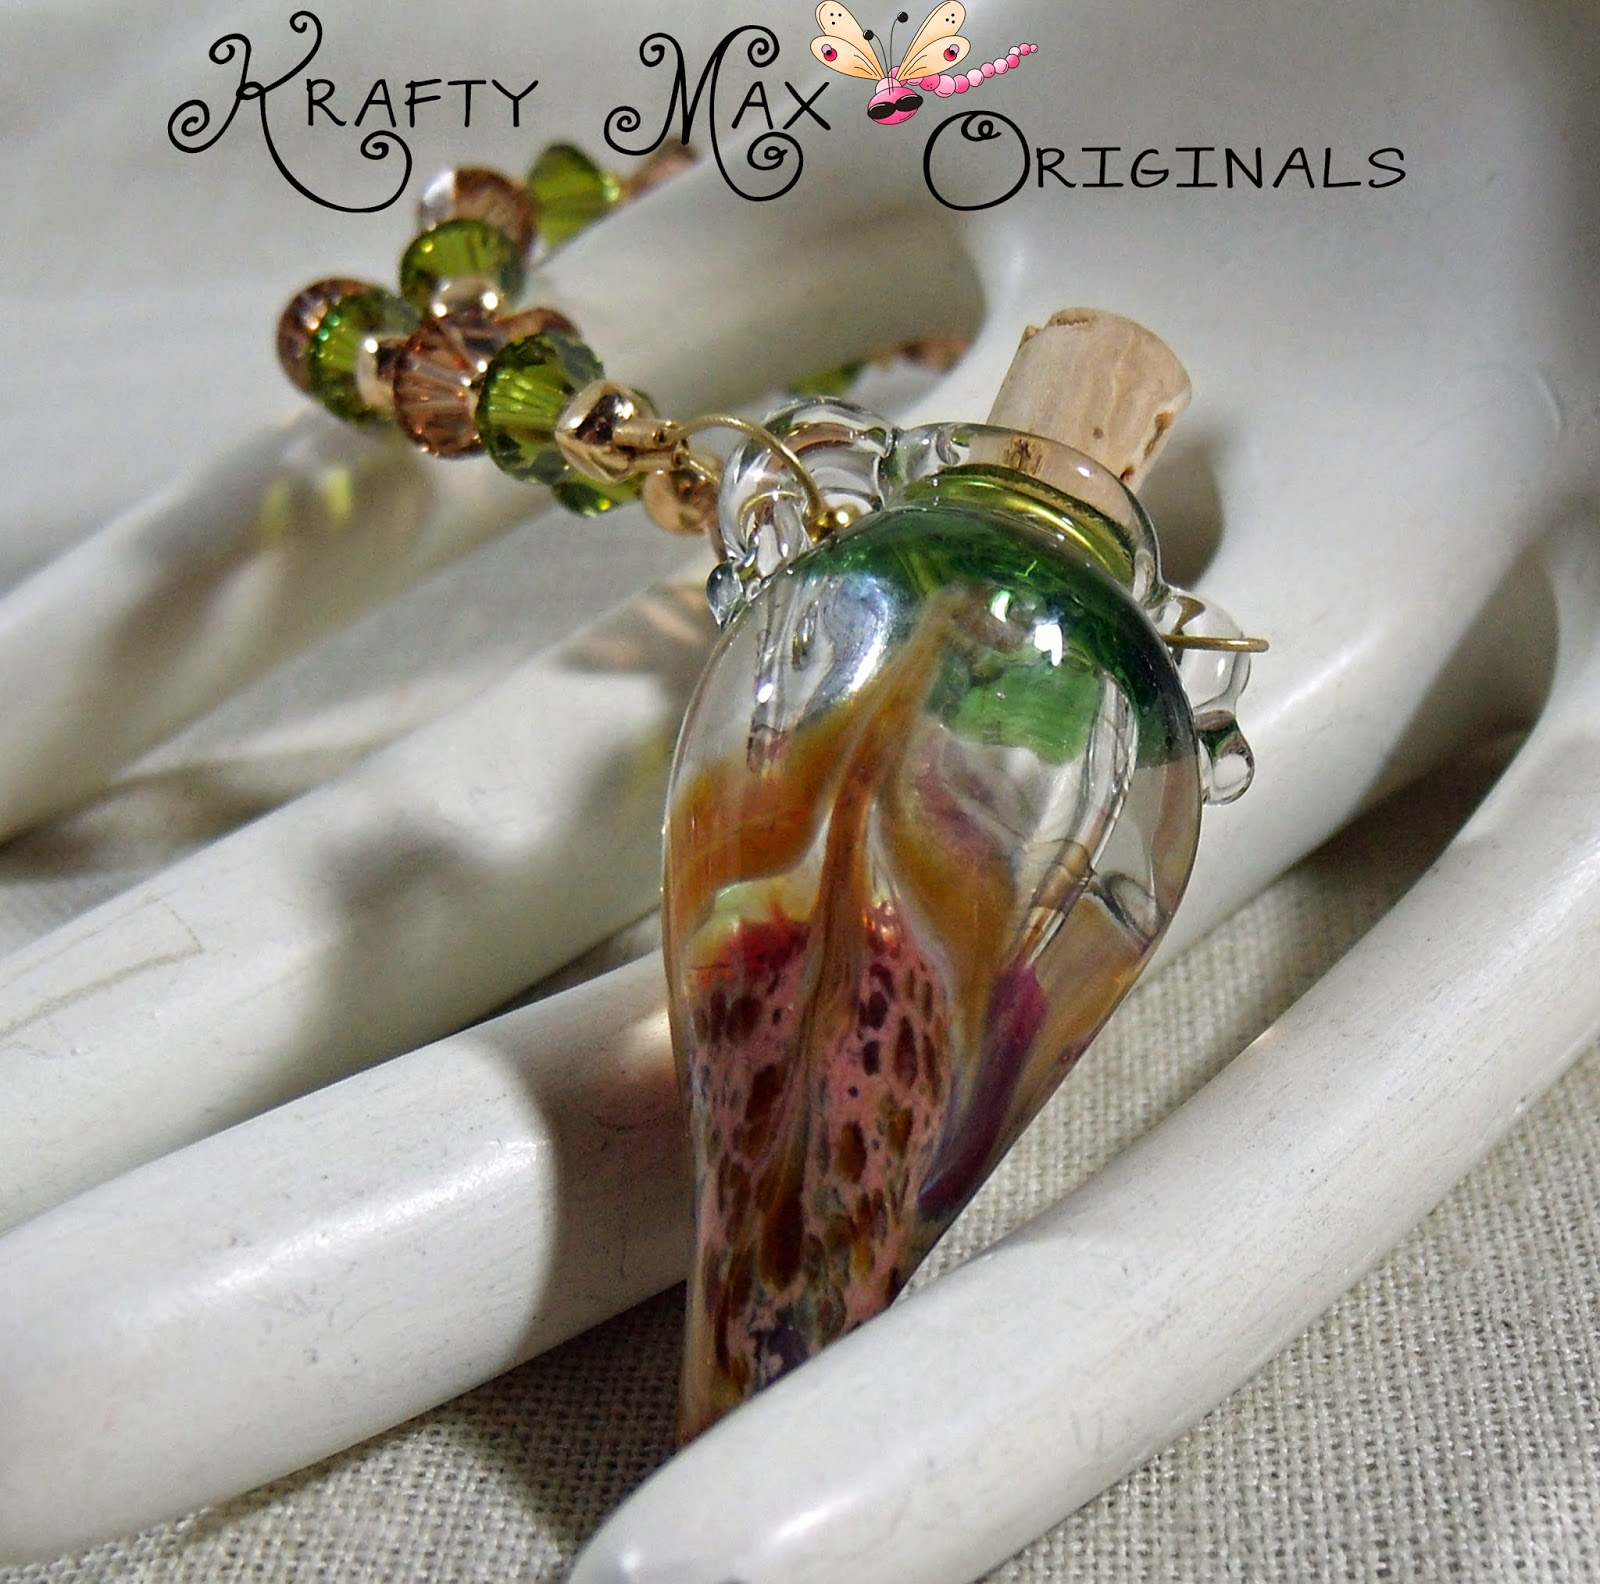 http://www.artfire.com/ext/shop/product_view/KraftyMax/9039649/isinglass_designed_lampwork_bottle_and_swarovski_crystal_necklace_set/handmade/jewelry/sets/lampwork